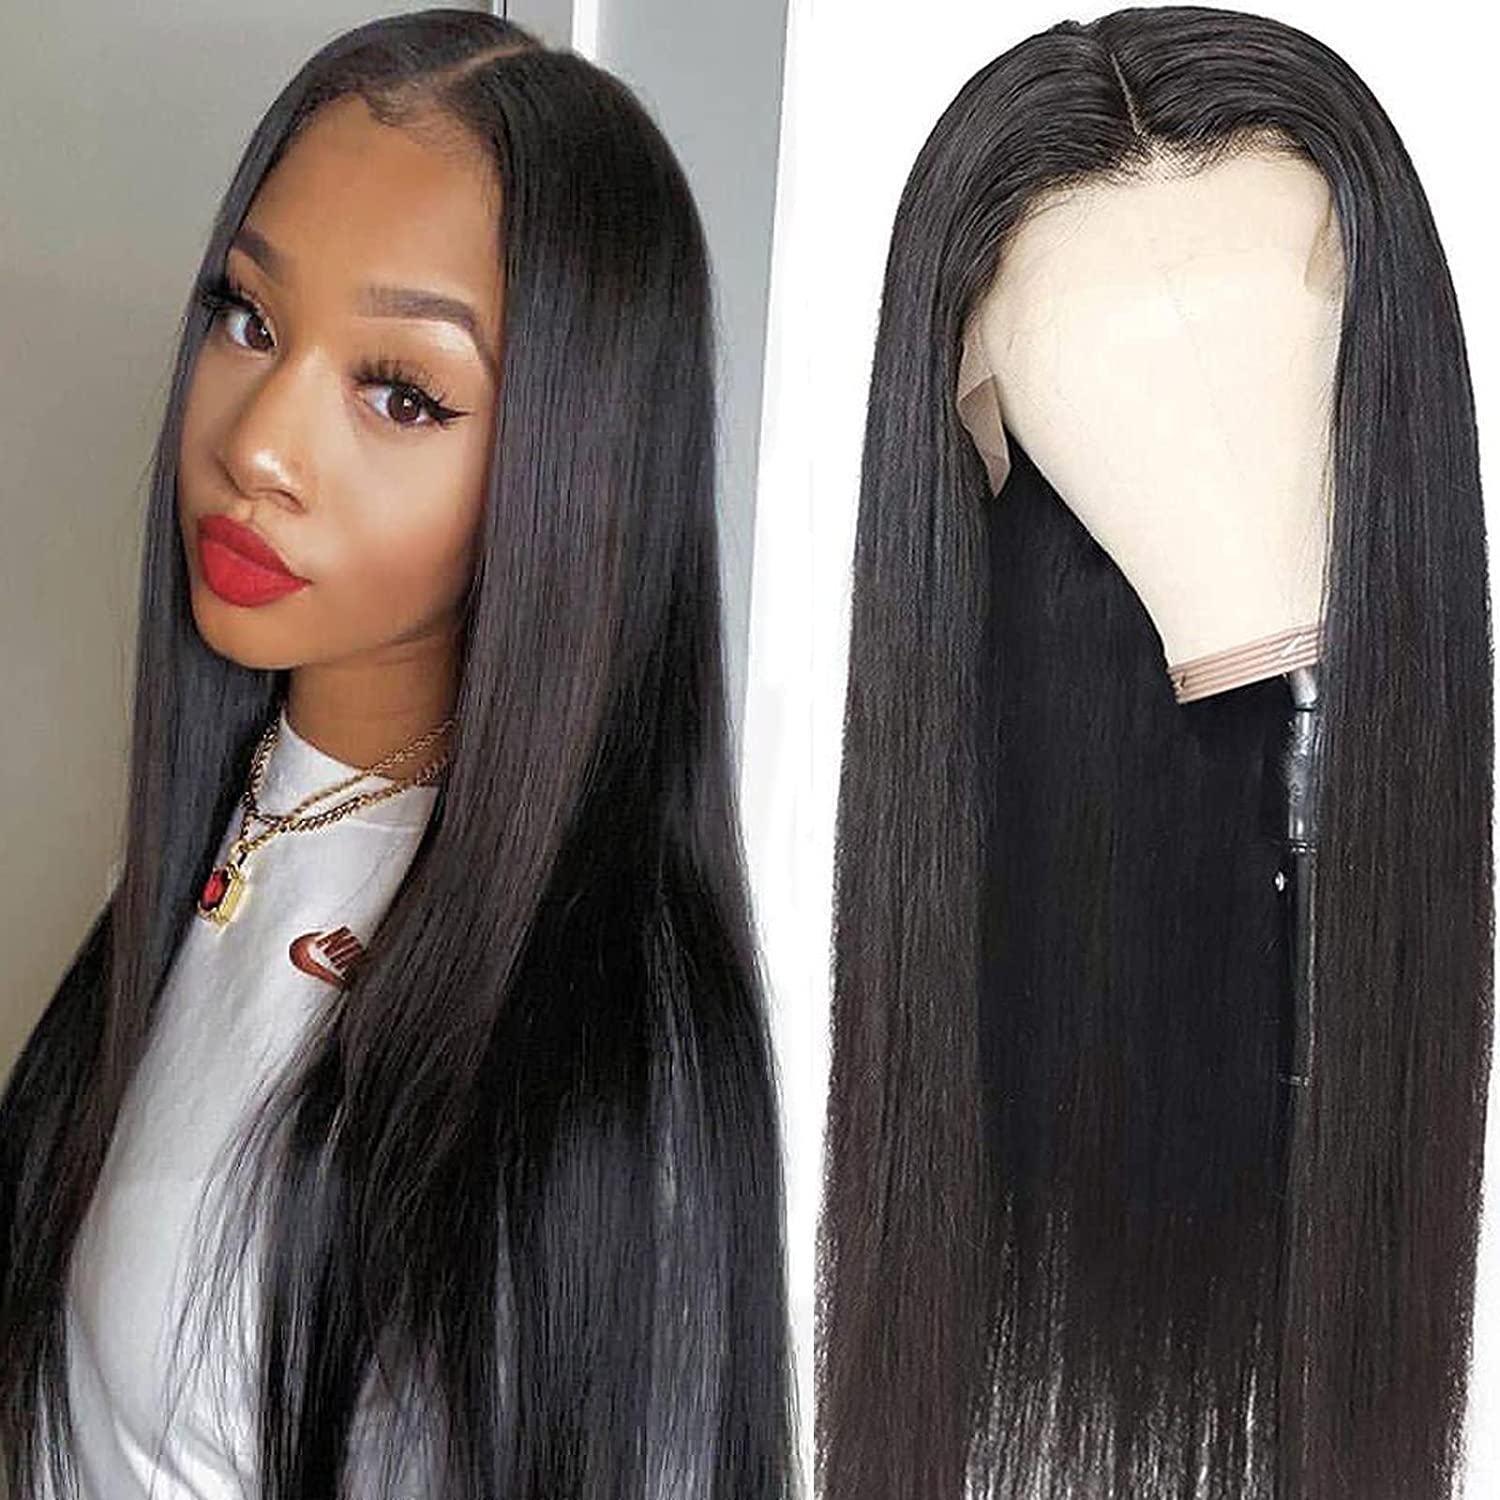 Straight Lace Front Wigs 5 popular Human Super popular specialty store Hair with Baby Pre 1 Plucked